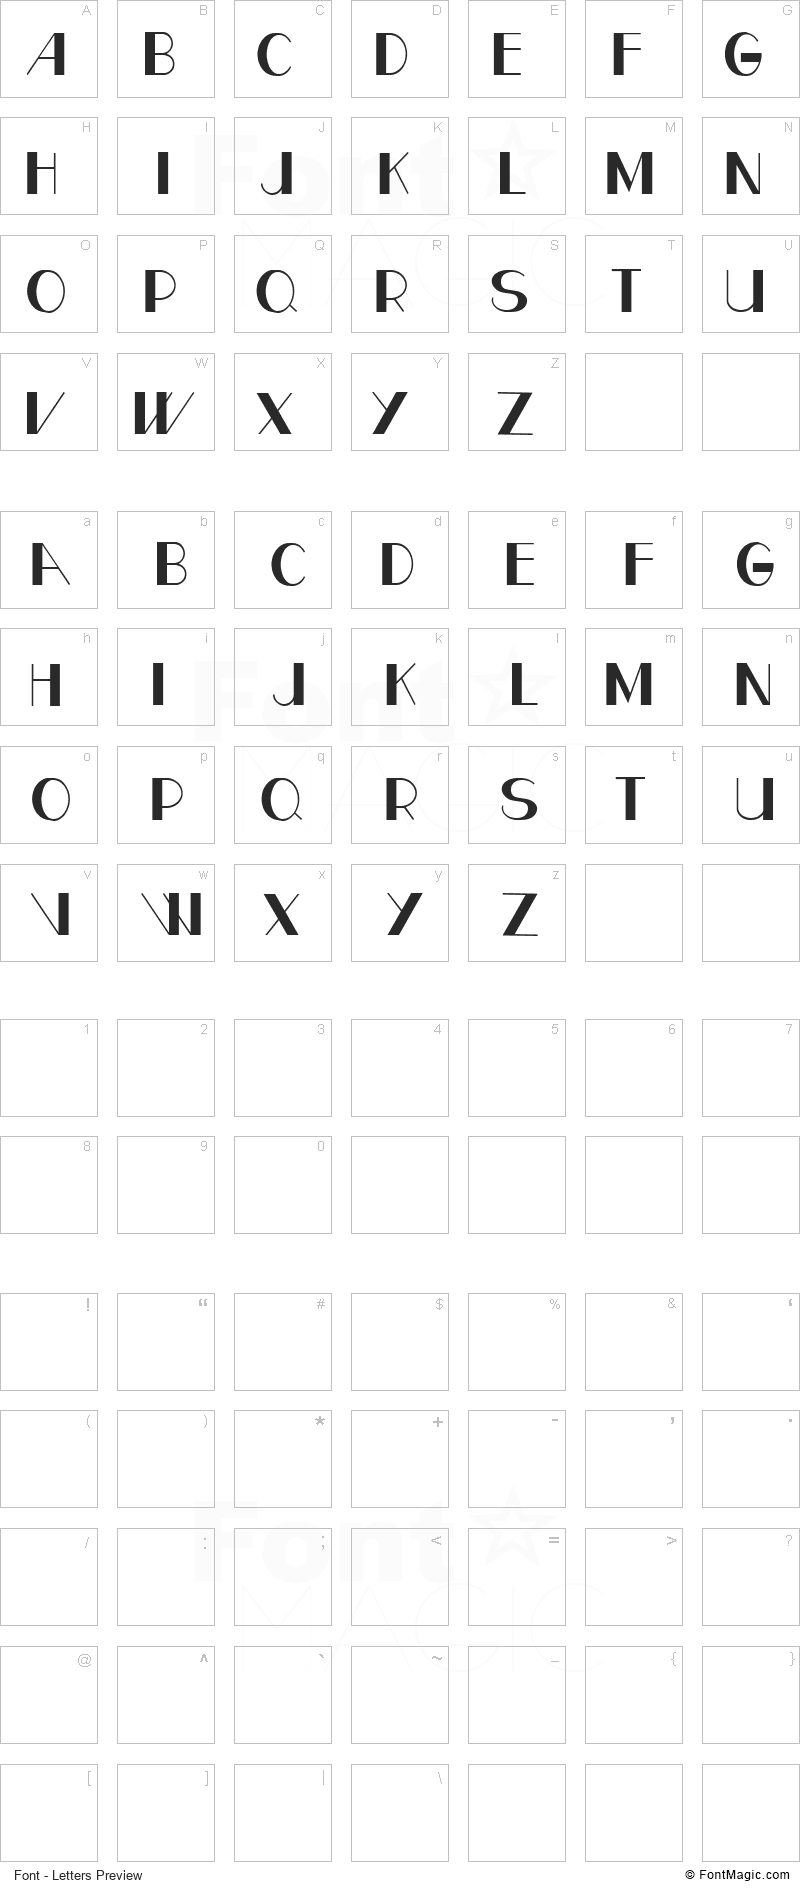 CF Paris Font - All Latters Preview Chart